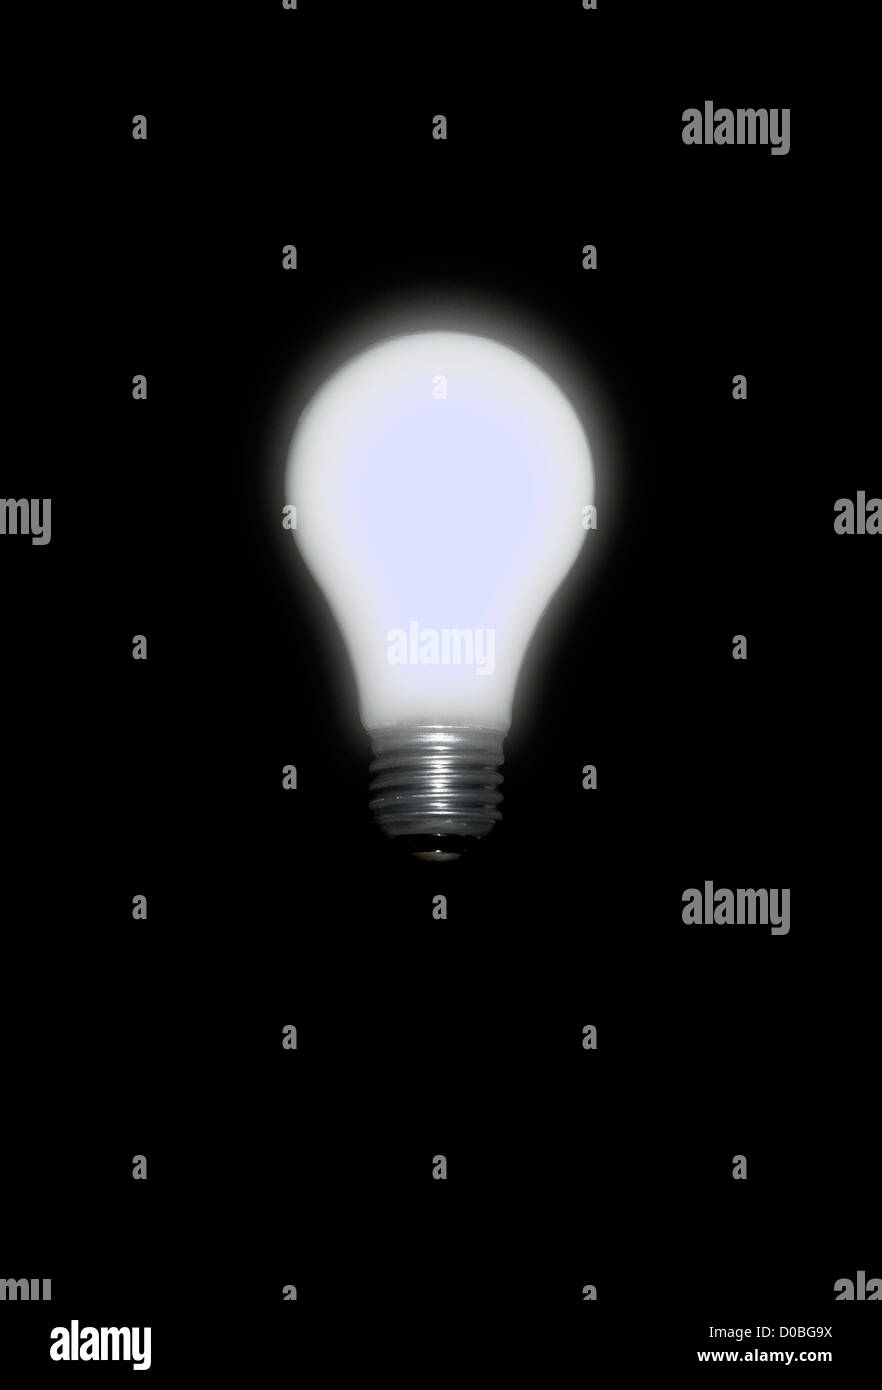 A brightly glowing lightbulb not plugged in on a black background - Stock Image